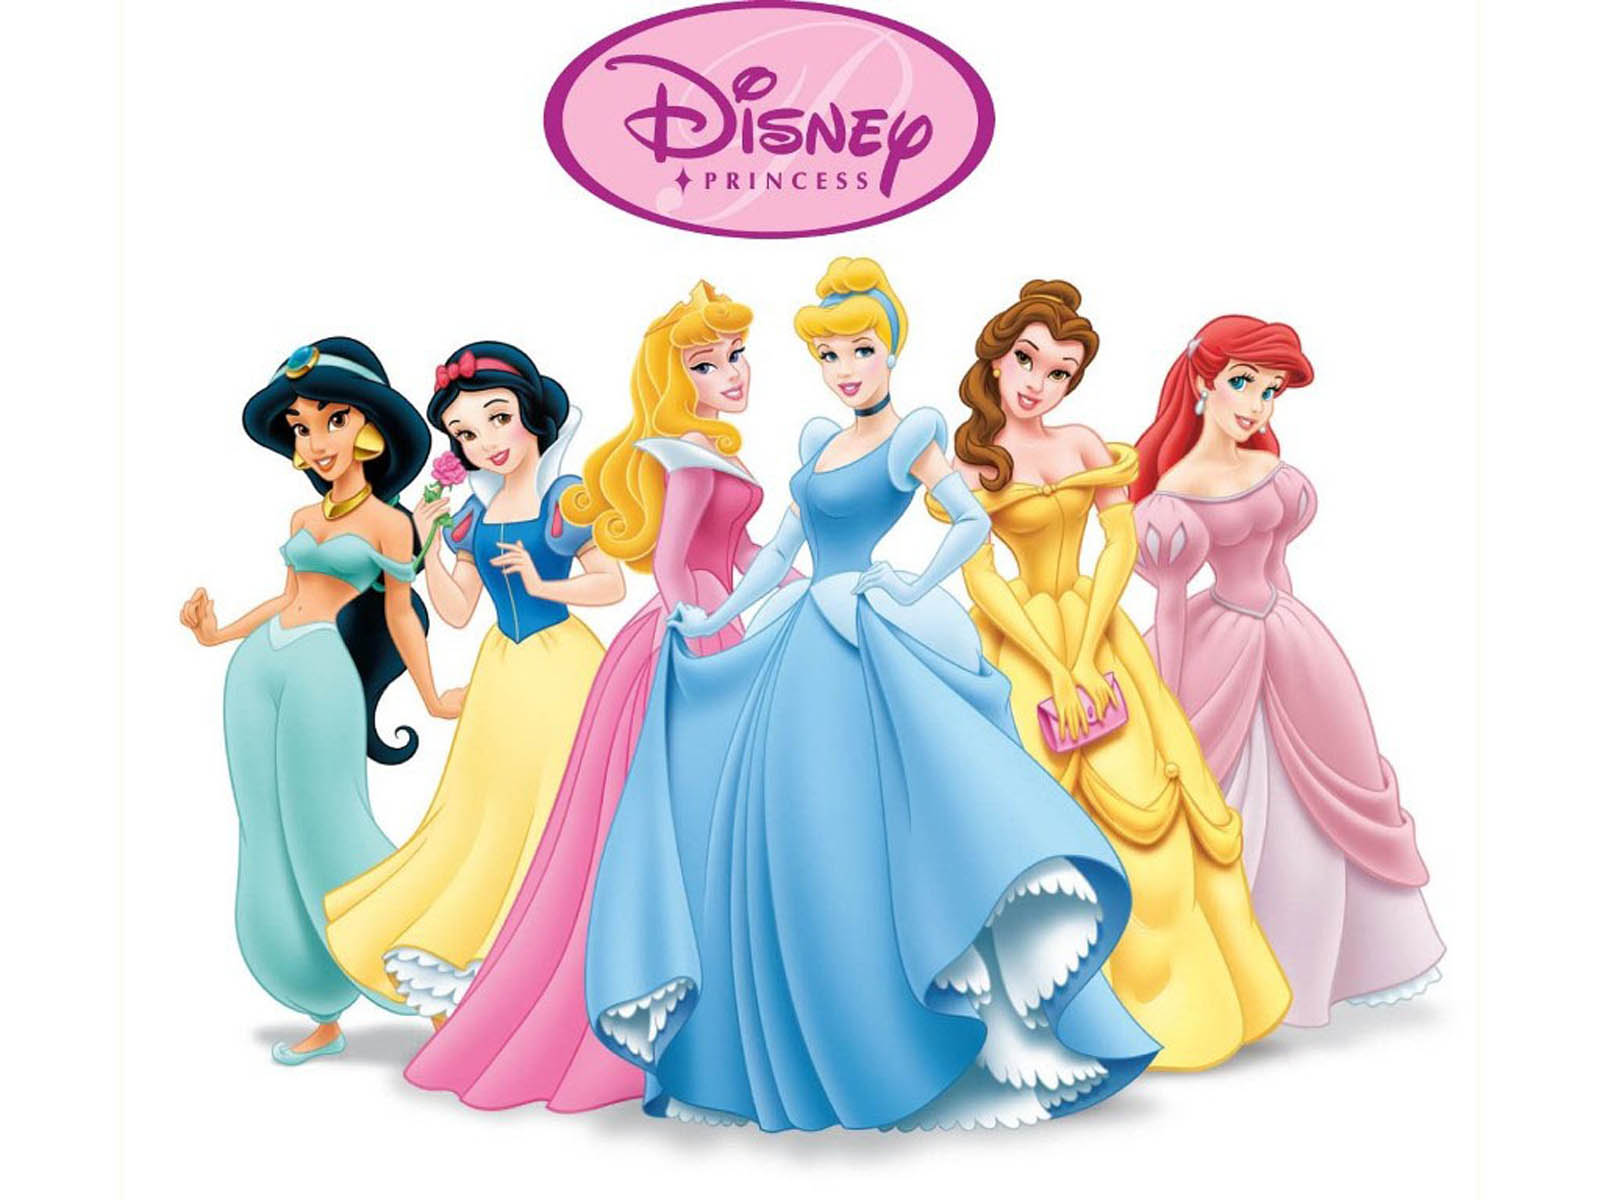 Tag Disney Princess Wallpapers Backgrounds Photos Images and 1600x1200